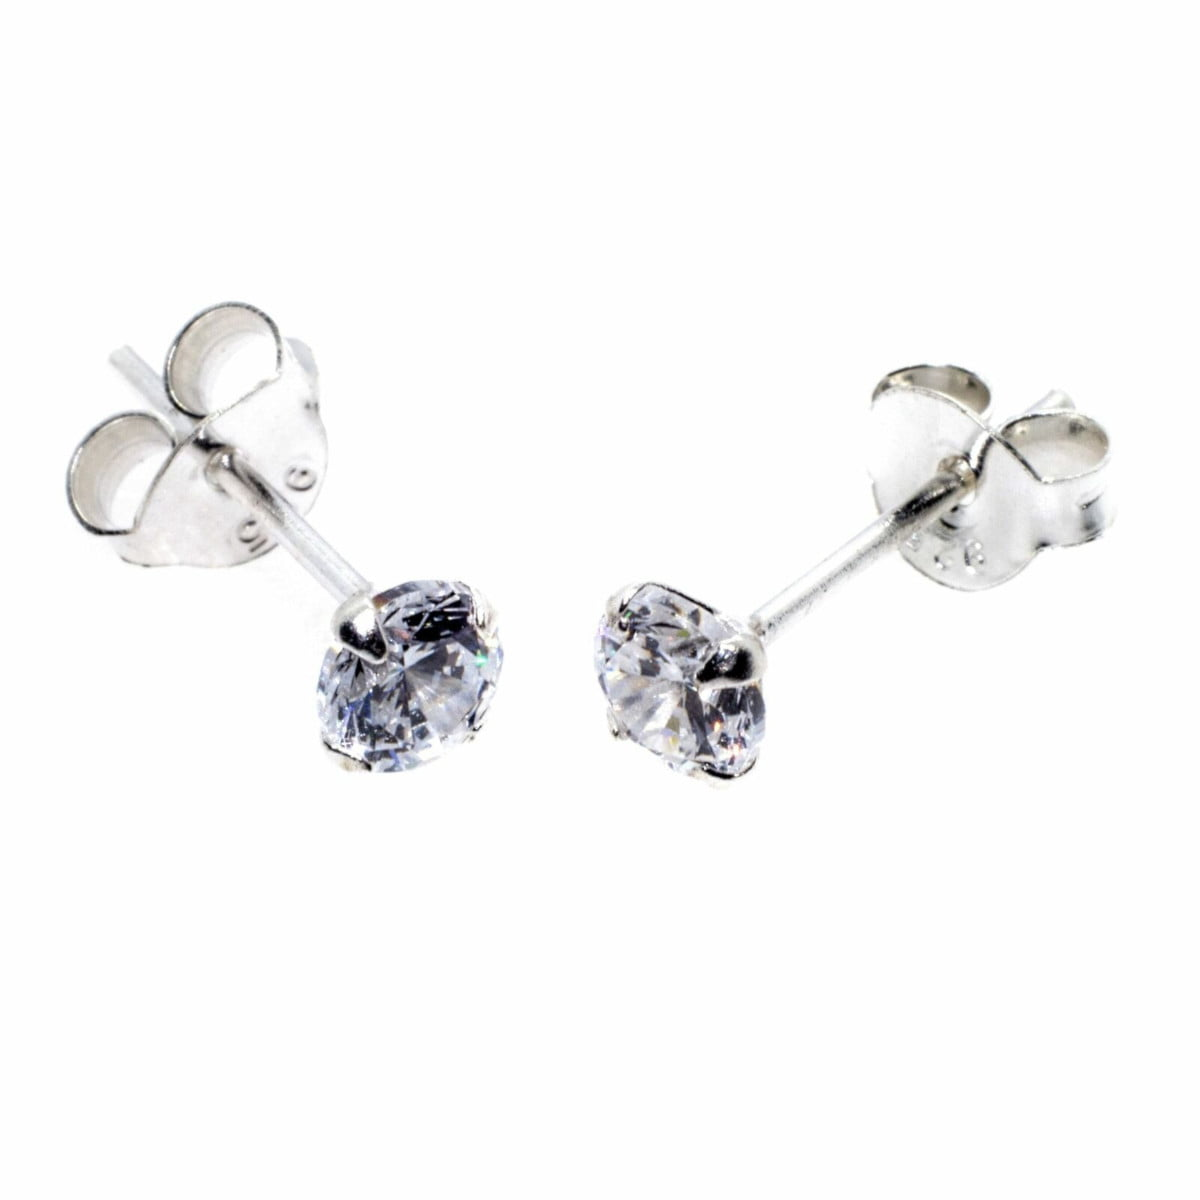 4 mm clear CZ stud round solitaire earrings in sterling silver